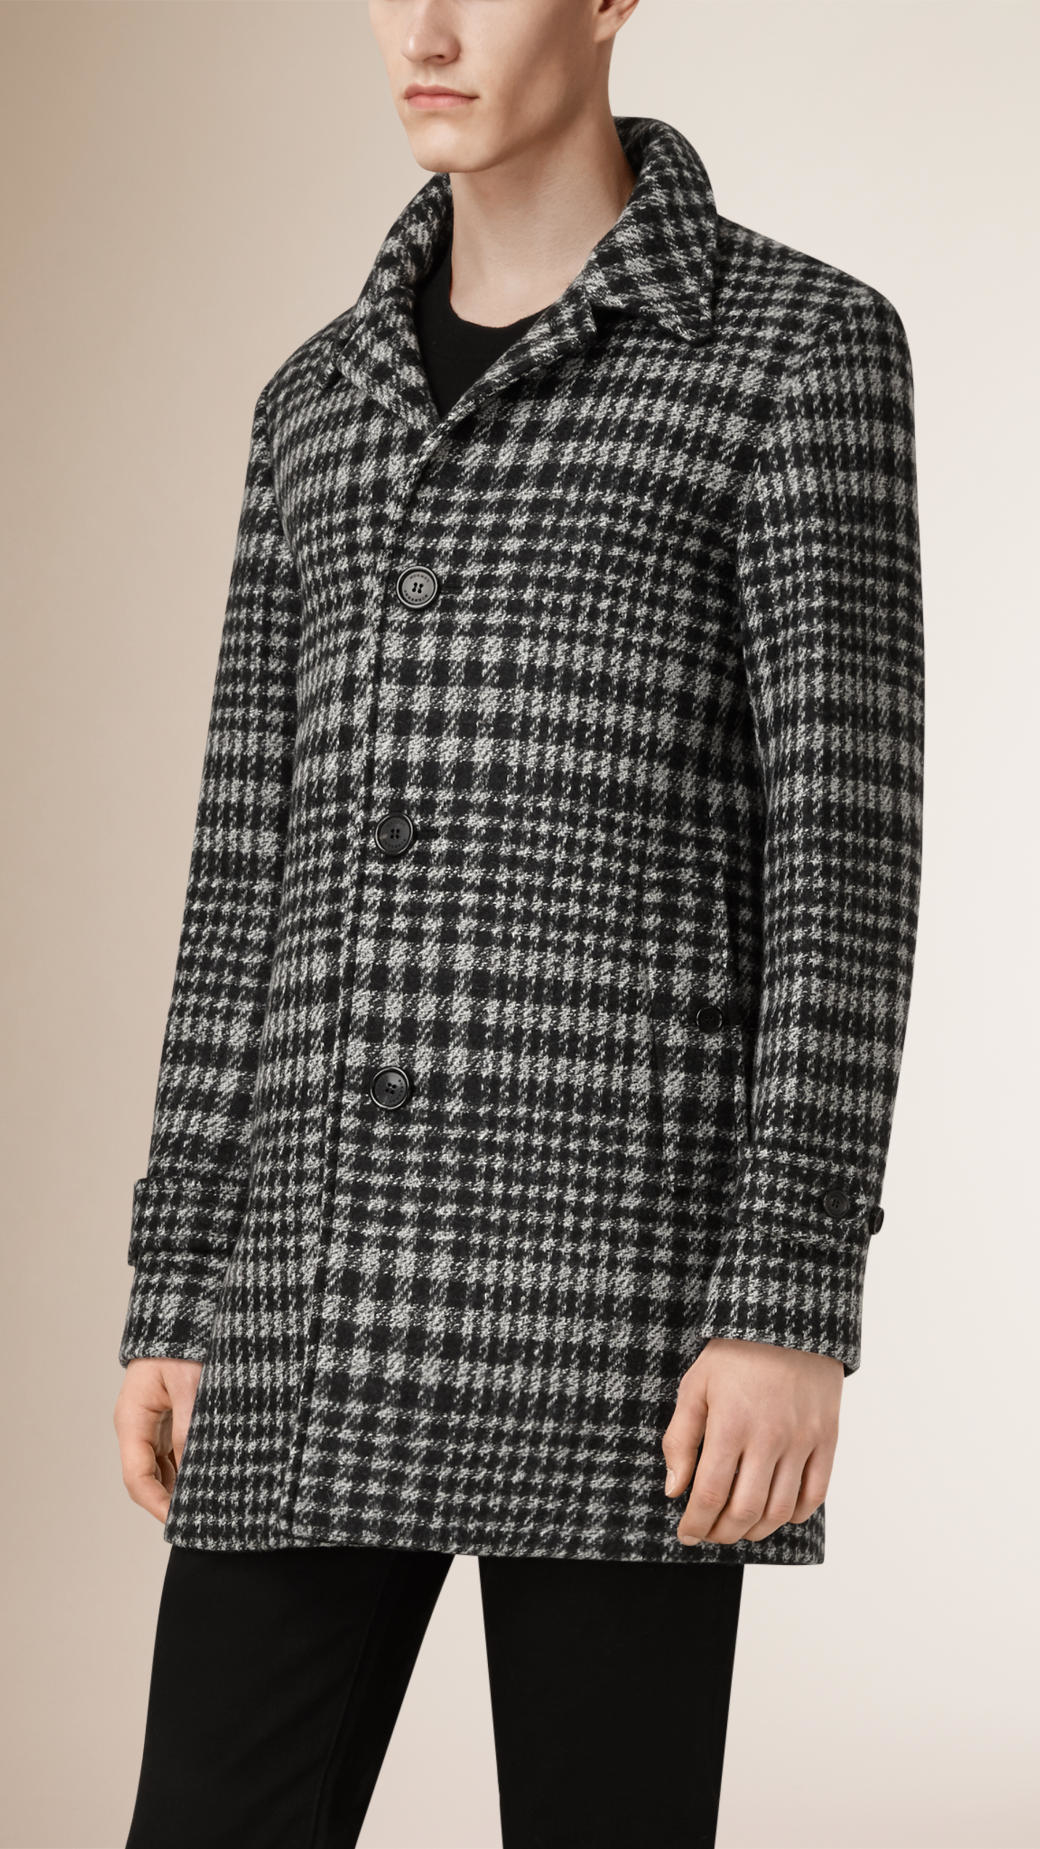 This elegant coat comes in a luxurious Impeccabile wool - a fabric that is crease- and stain-resistant and breathable, guaranteeing an impeccable look from morning to night. The material comes in a sophisticated shade of gray and features a classic Prince.